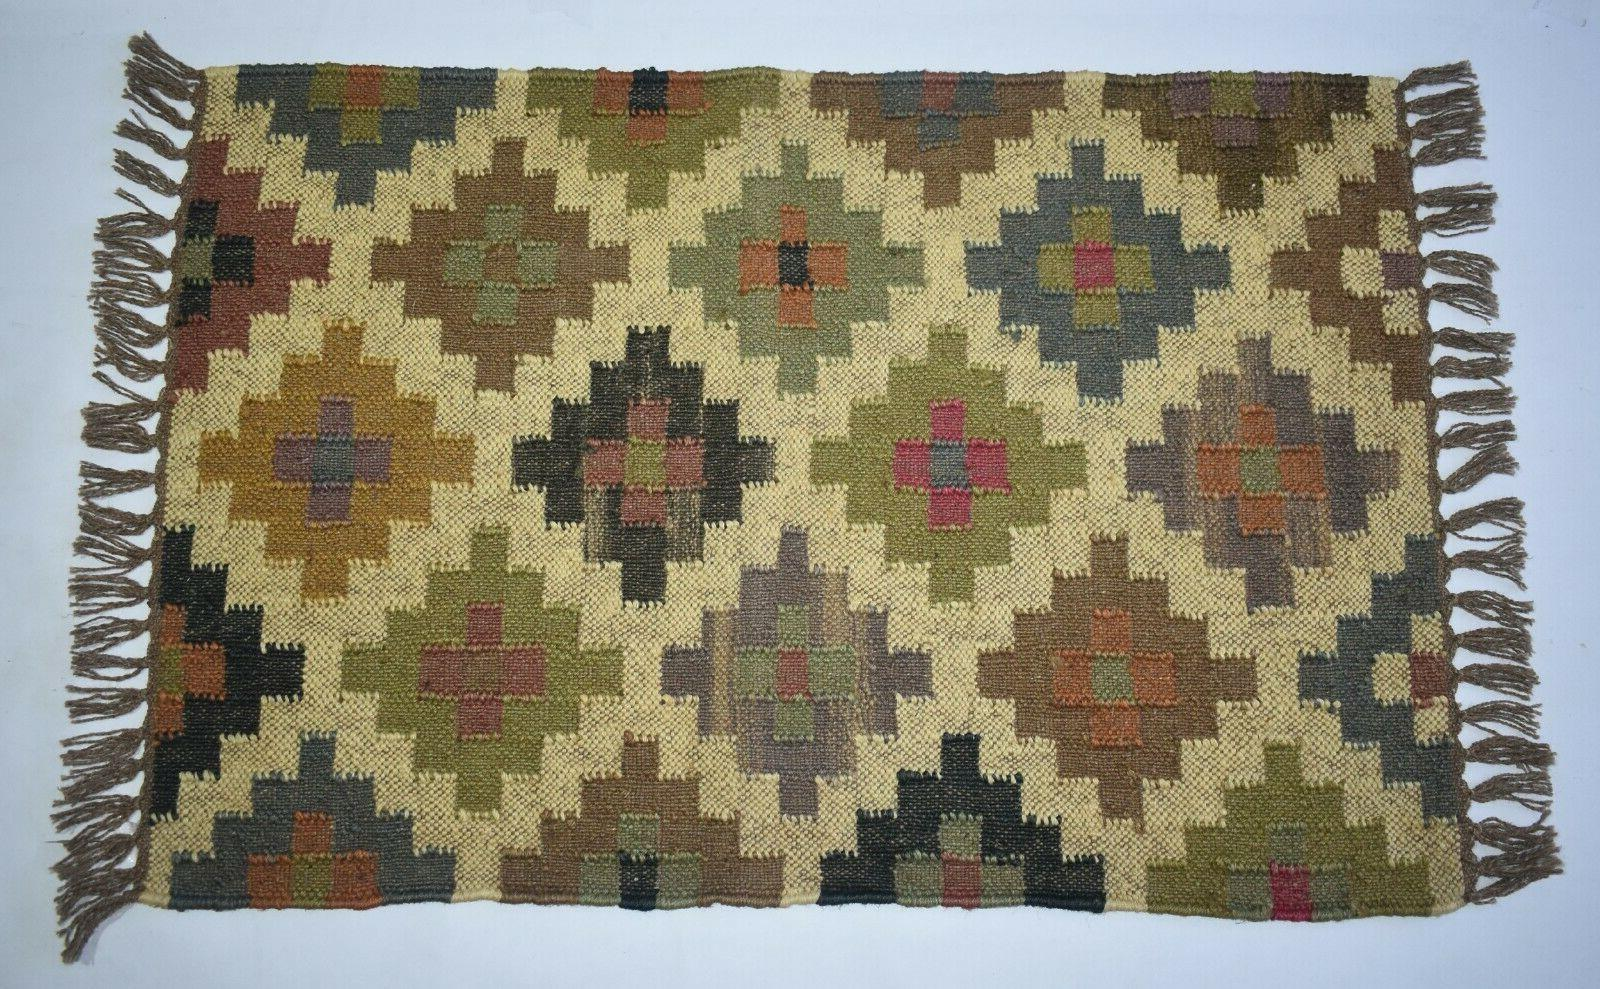 Indian Out/In Door Mat Multi Color Rug